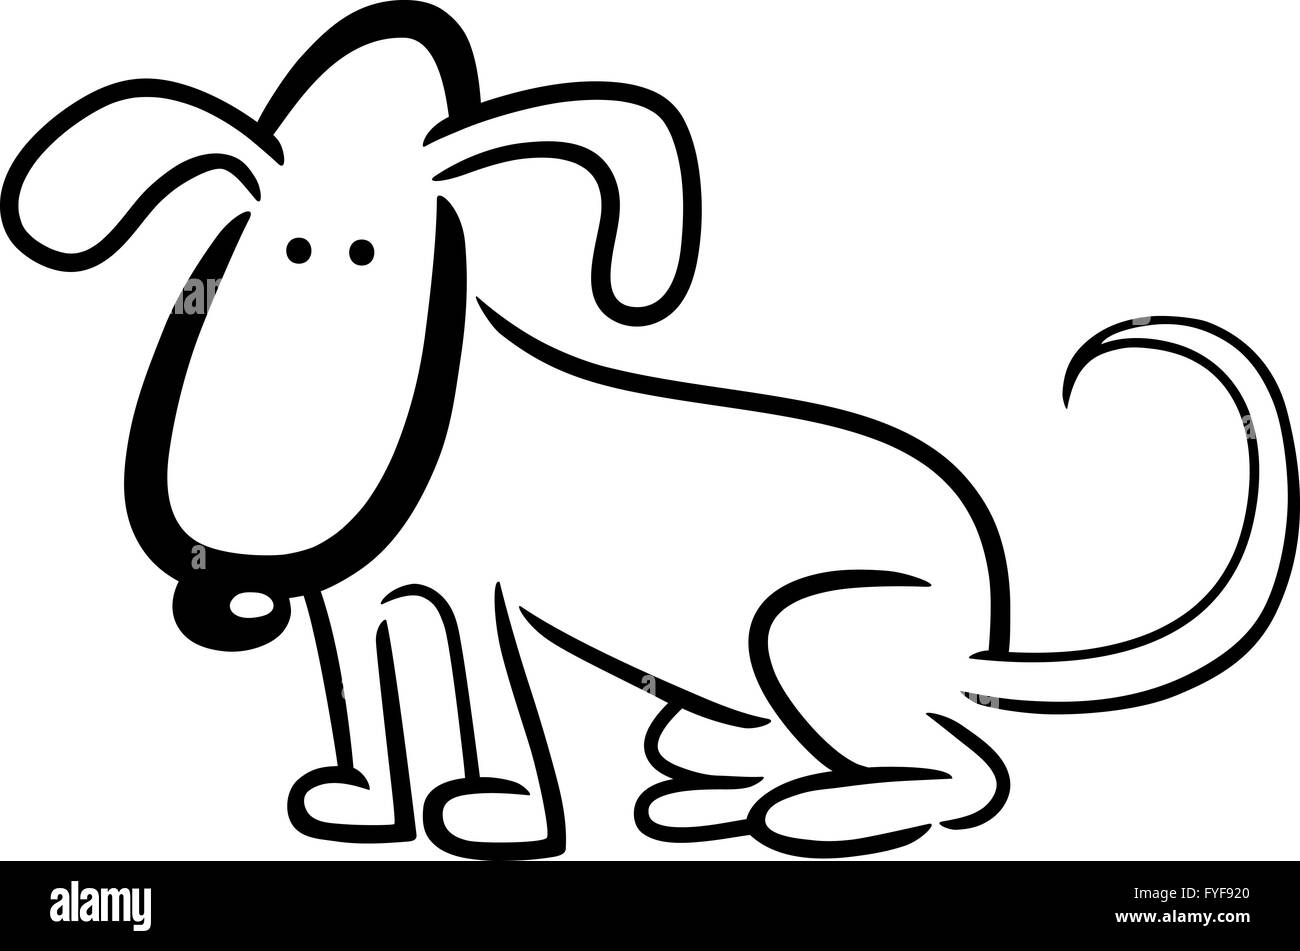 Doodle Black And White Stock Photos Images Page 3 Alamy